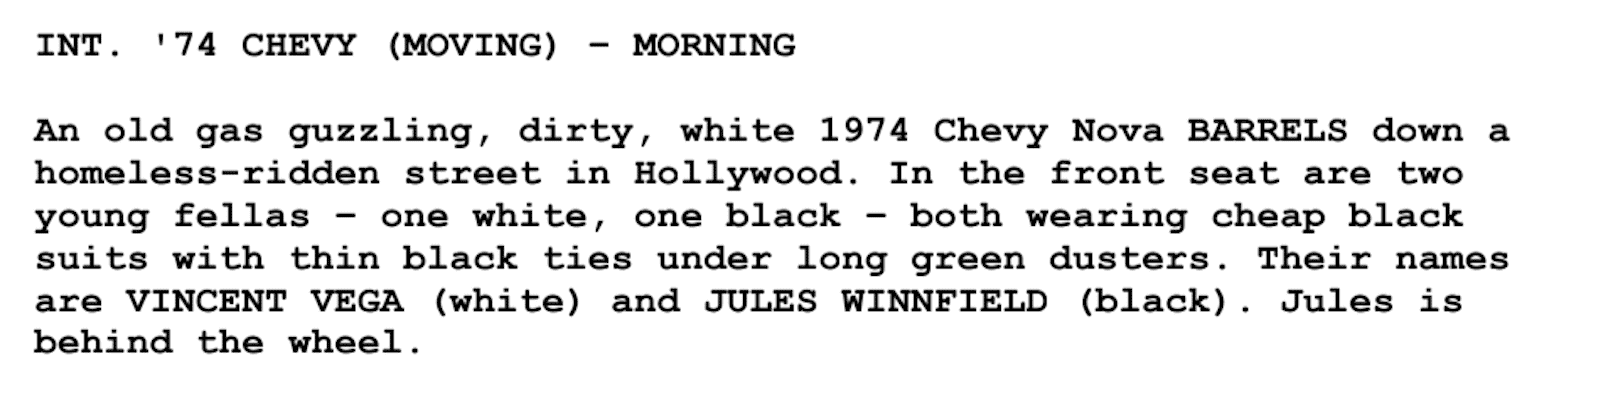 Screenplay Examples - Pulp Fiction Script - Screenplay Snippet 16 - Chevy Nova